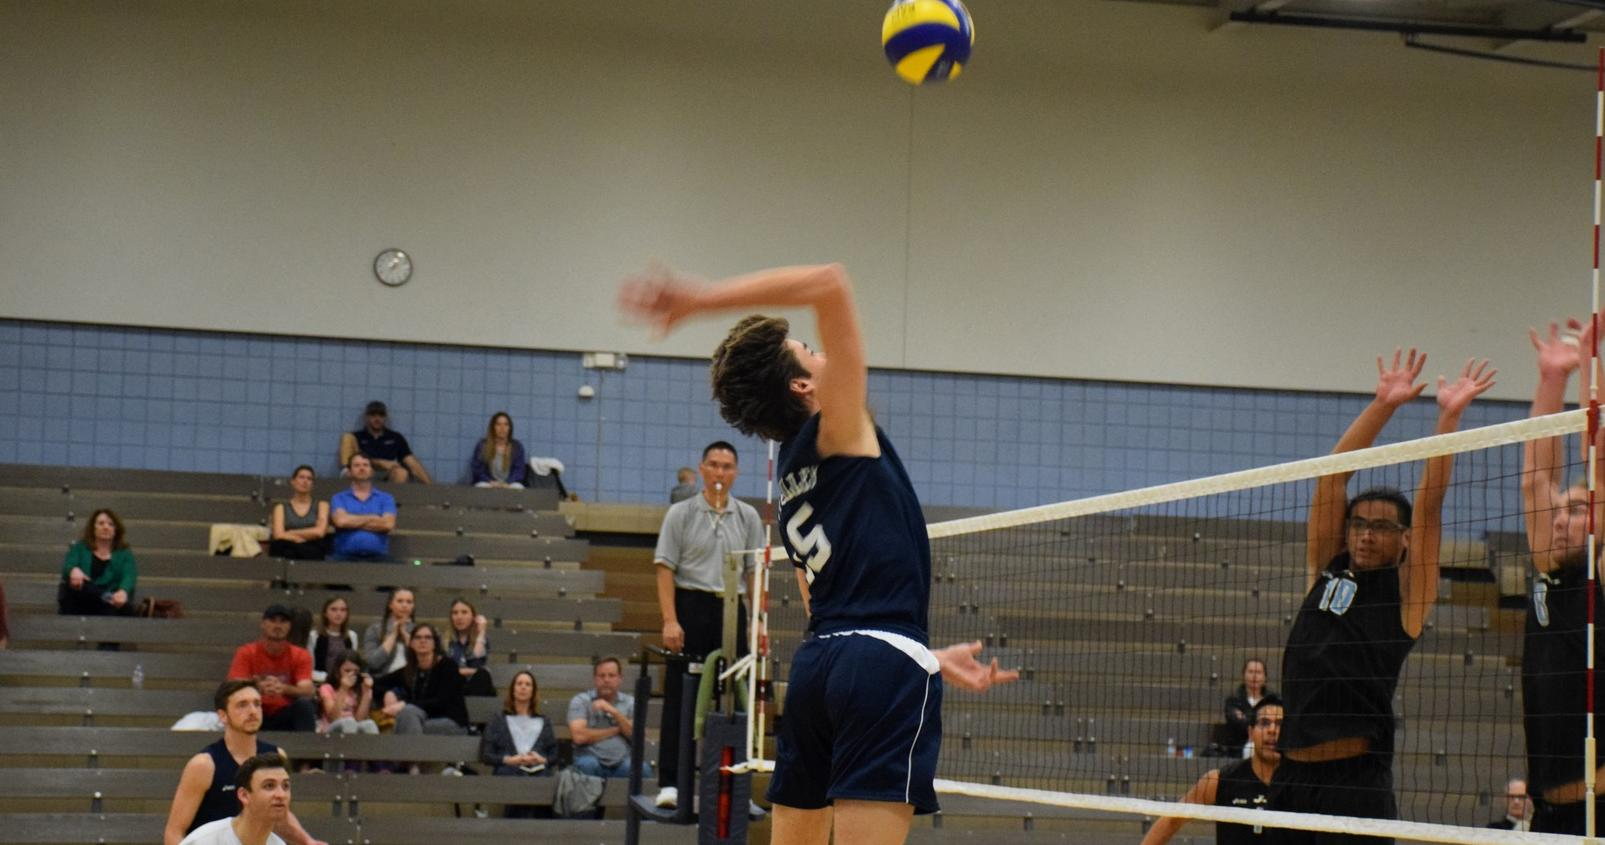 Men's volleyball team starts slow, finishes strong in road win